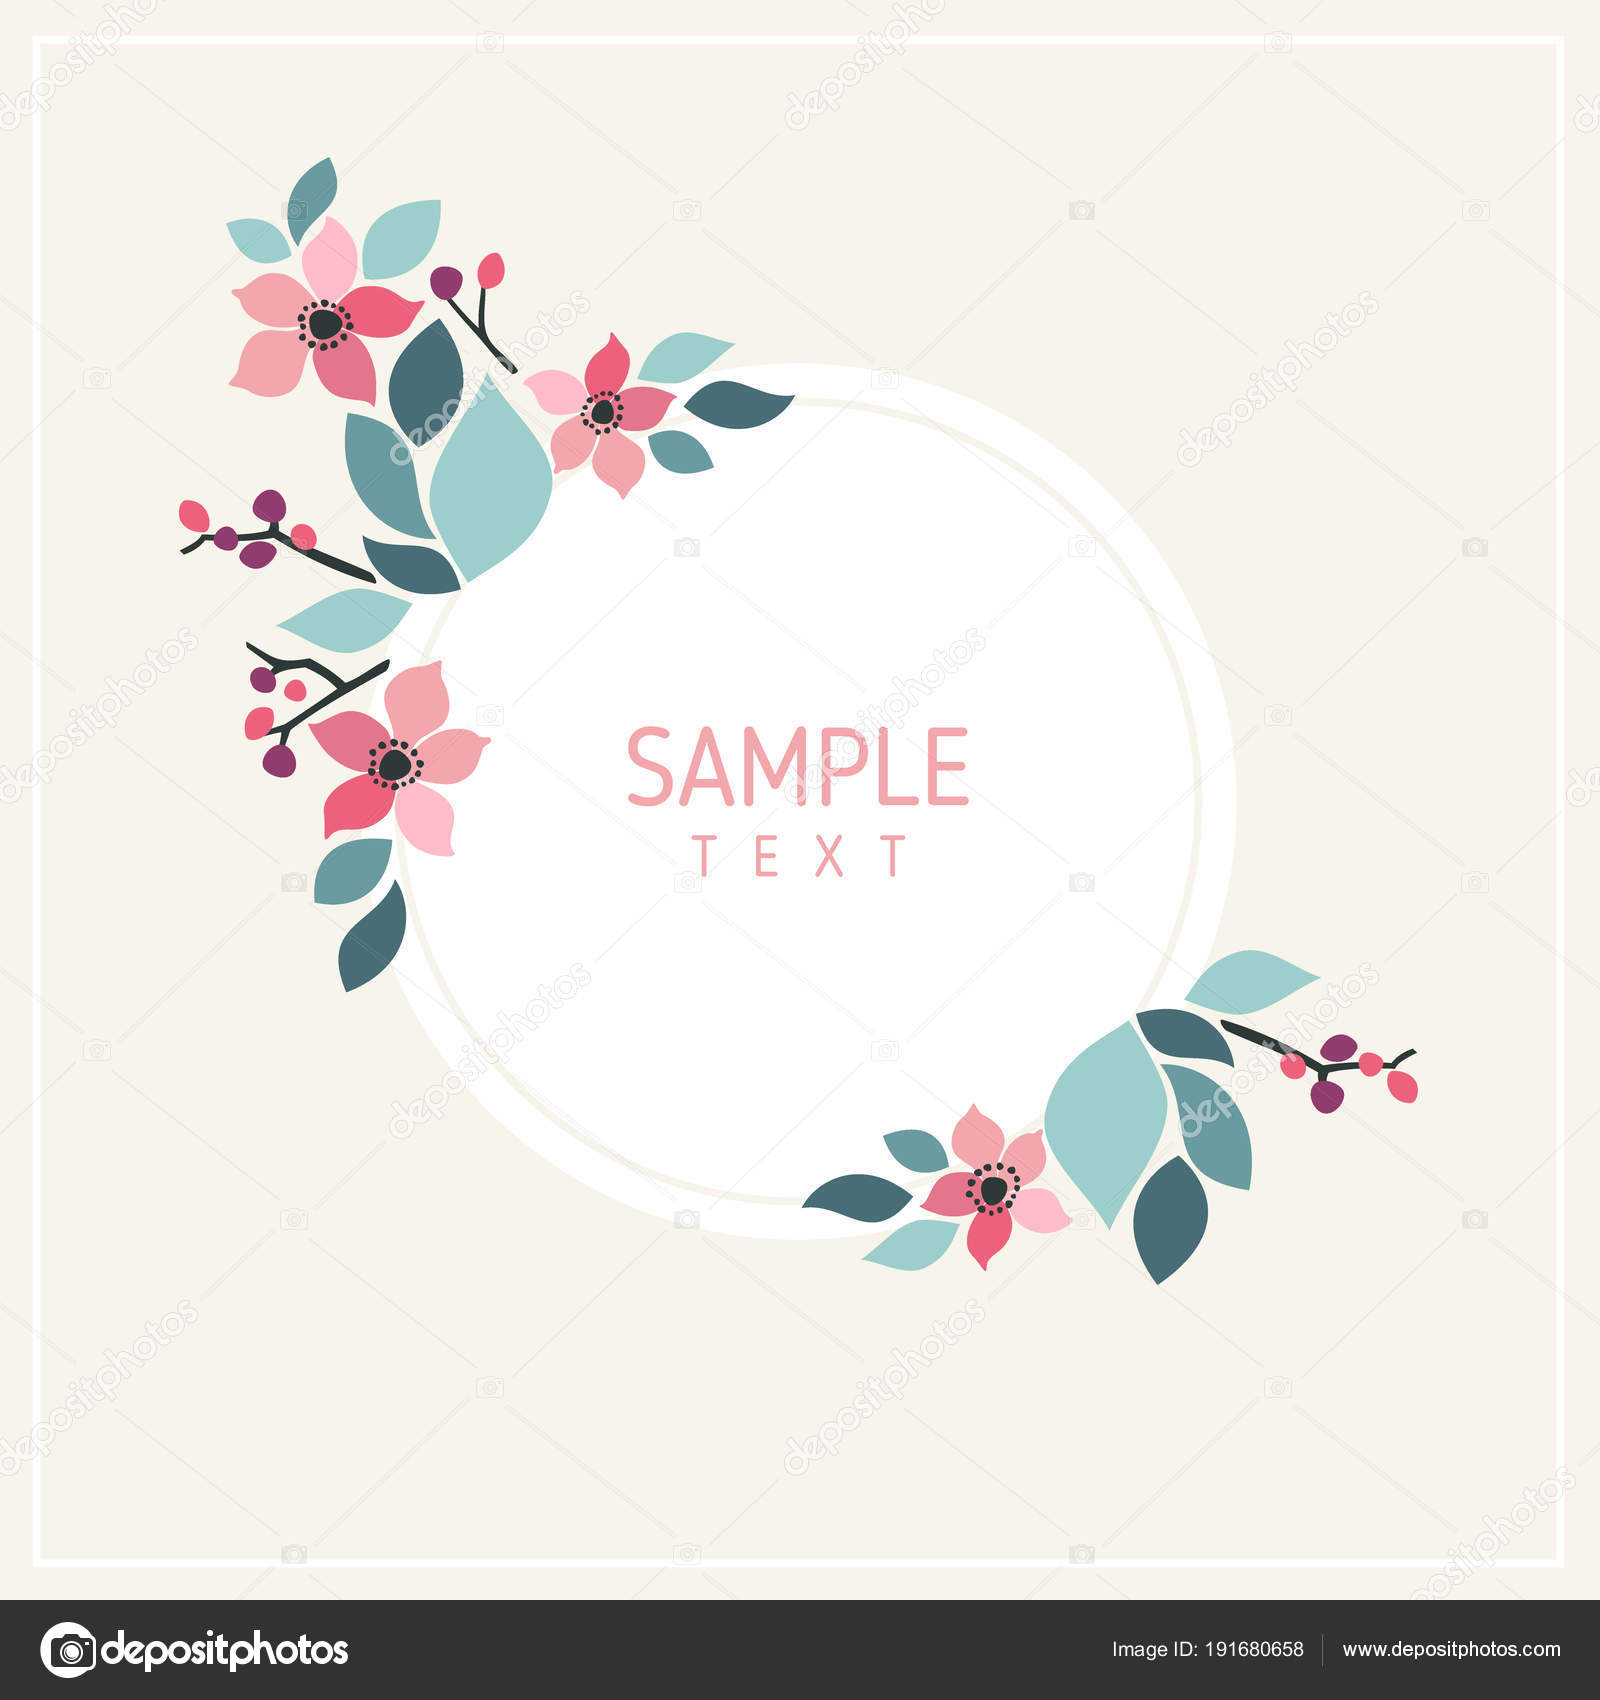 Card with flowers and leaves wedding ornament concept floral wedding ornament concept floral decoration vector layout decorative greeting card or invitation design background vector by antartstock stopboris Choice Image